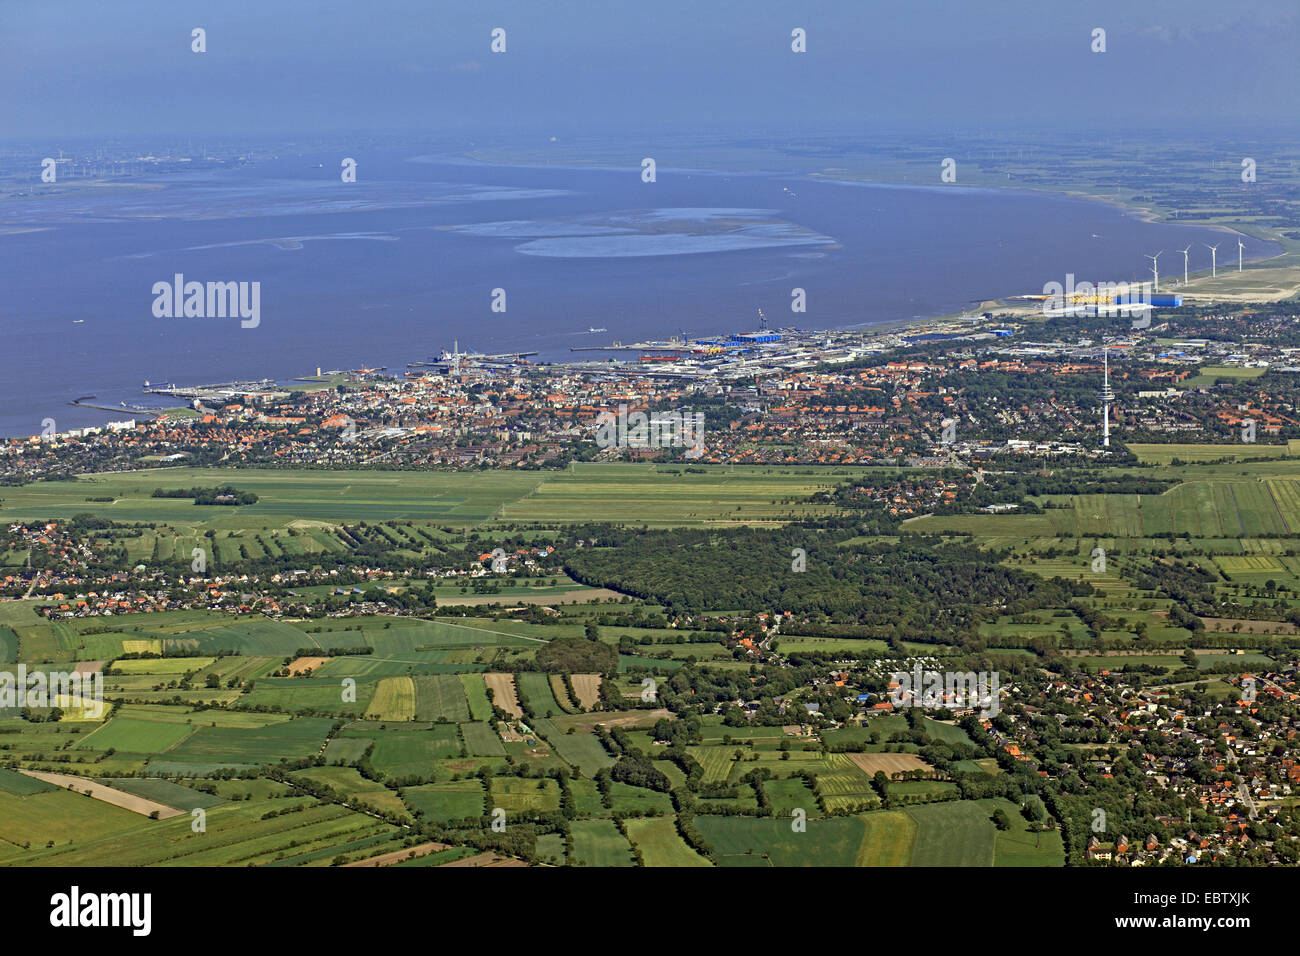 view of Cuxhaven and Elbe river, Germany, Lower Saxony, Cuxhaven - Stock Image